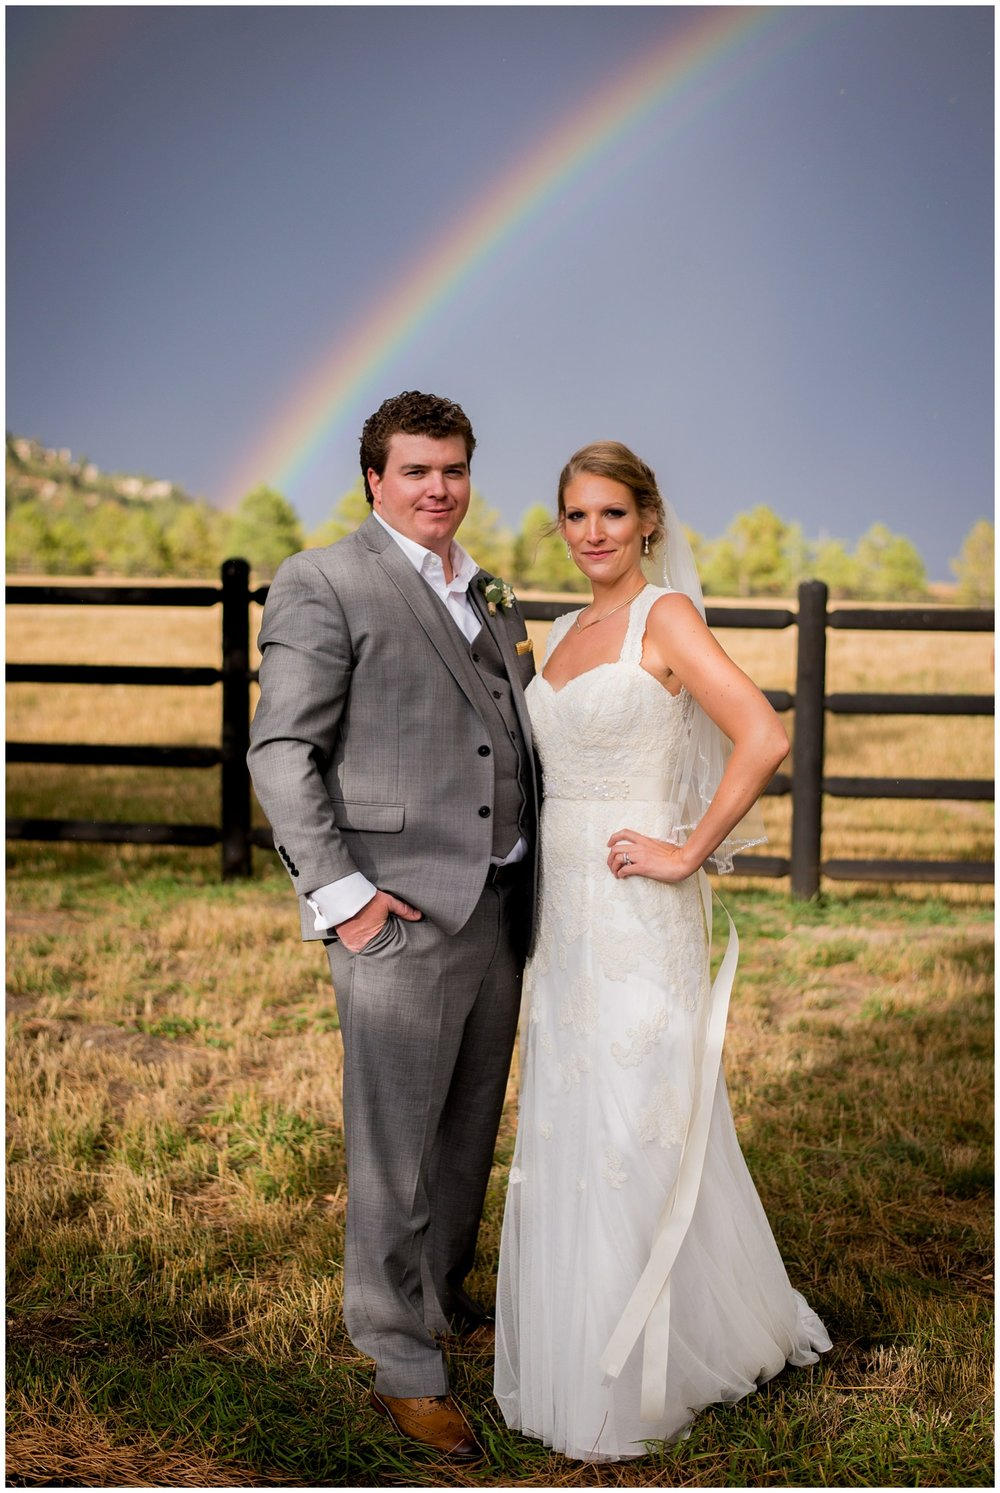 573-Spruce-mountain-ranch-colorado-wedding-photography.jpg